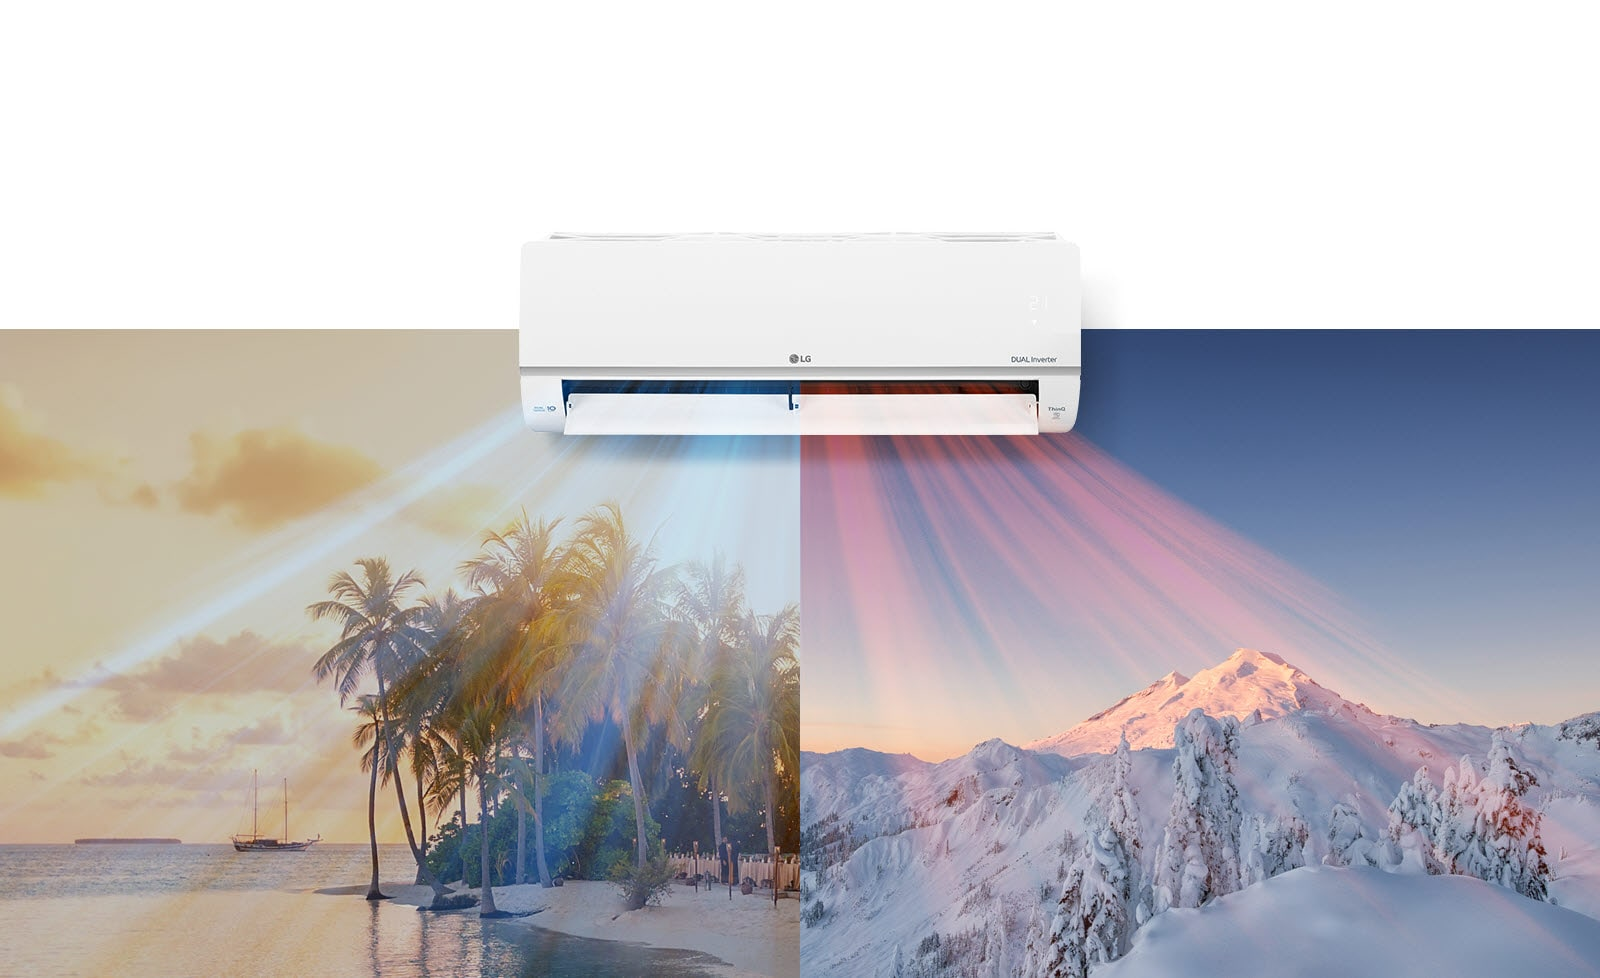 An LG air conditioner is hanging at the top center of the image. Beneath it are two images, one image shows a hot beach scene and the other shows a snowy mountain scene. Air blows out of the air conditioner with cool blue air on the beach scene and warm red air across the snowy scene.